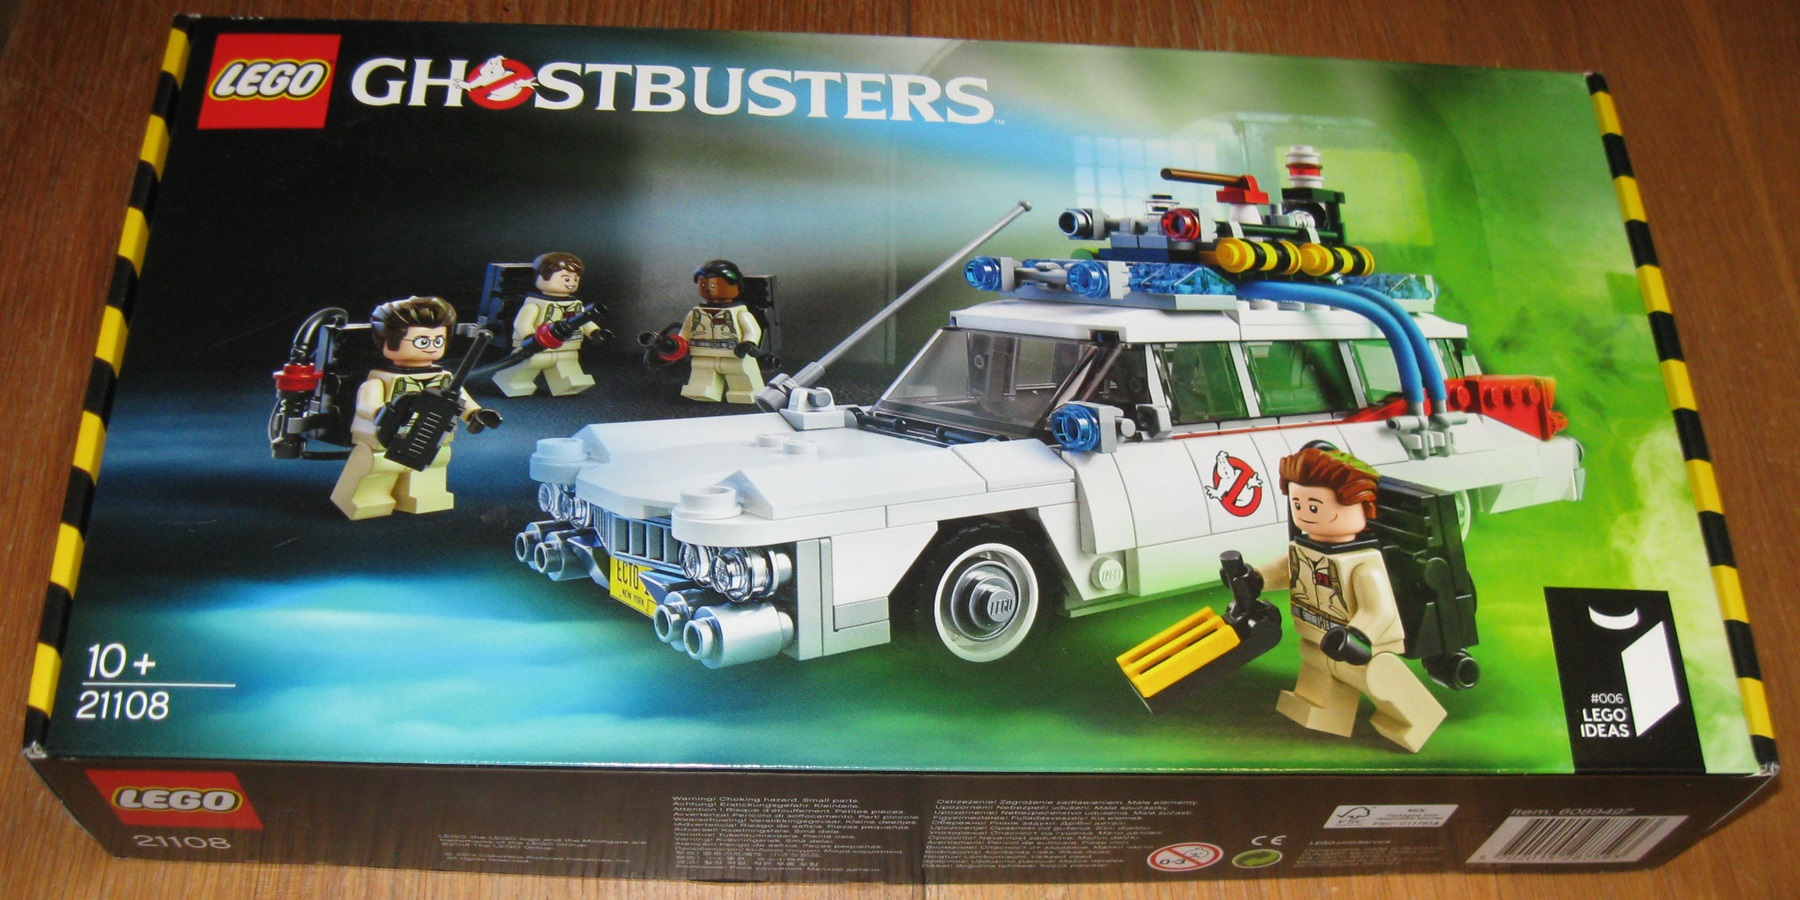 0010 Lego 21108 Ghostbusters